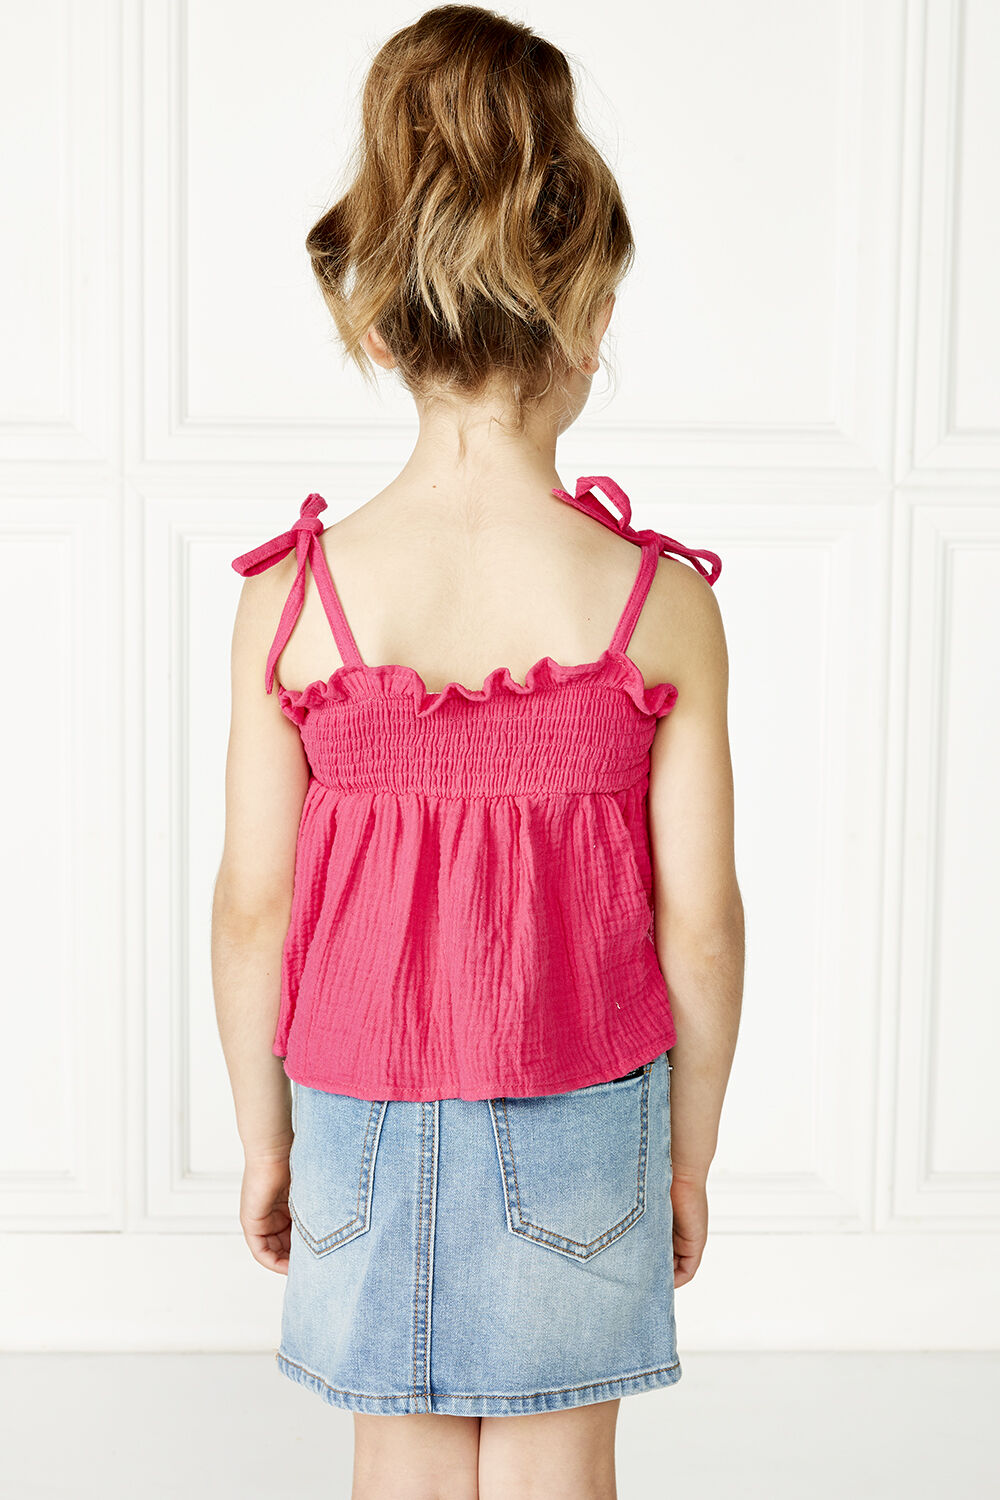 NORA SHIRRED TOP in colour SHOCKING PINK